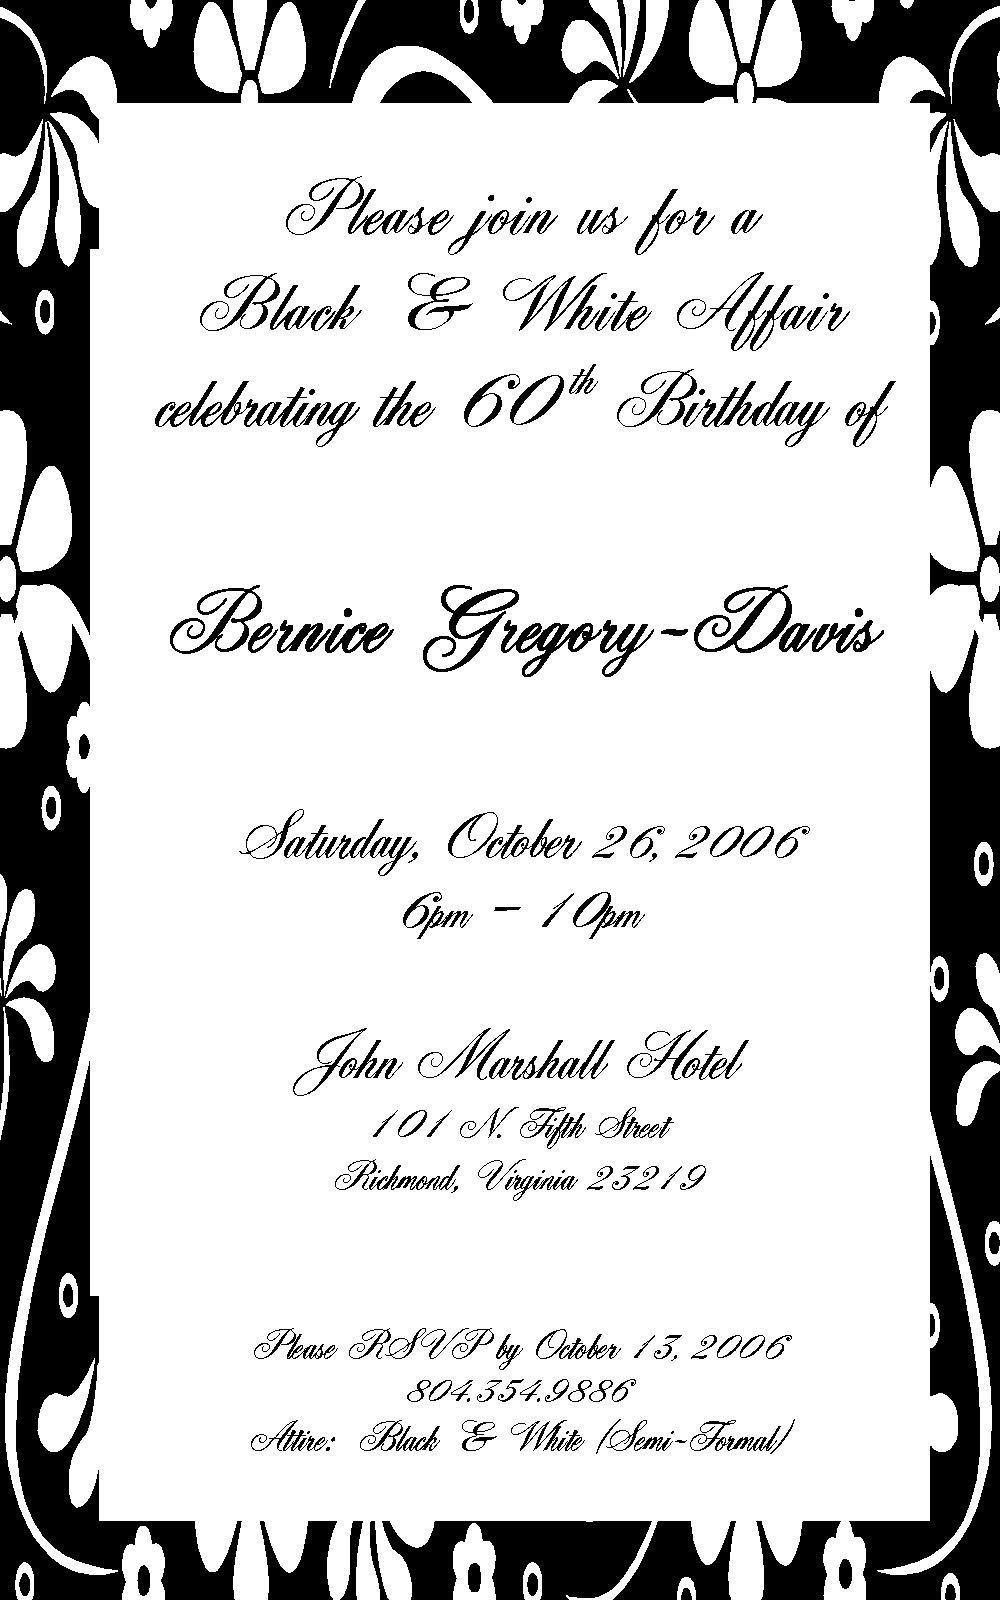 Birthday Invitation sample Party Invitation Pinterest Dinner